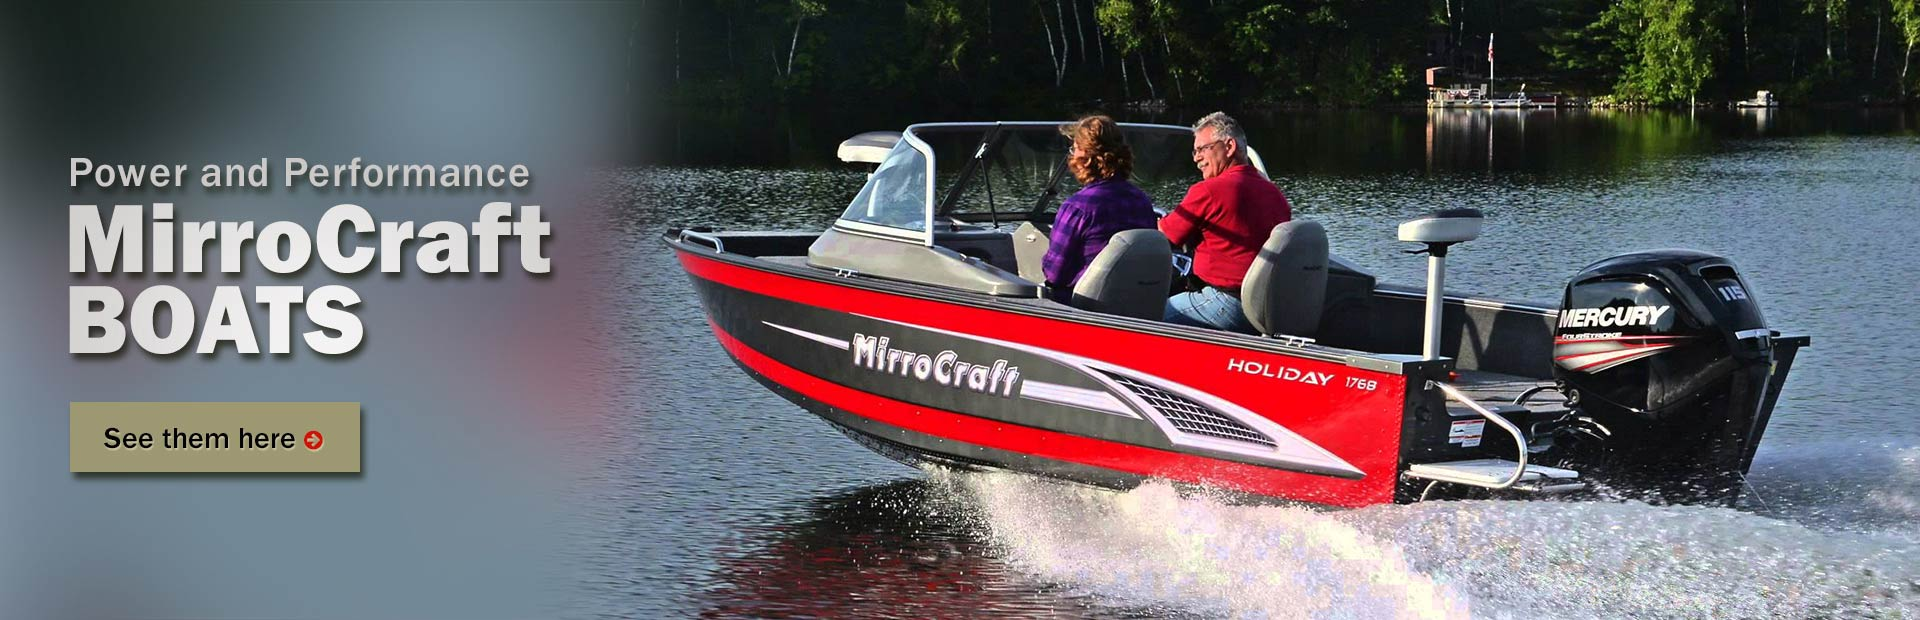 MirroCraft Boats: Click here to view the lineup.